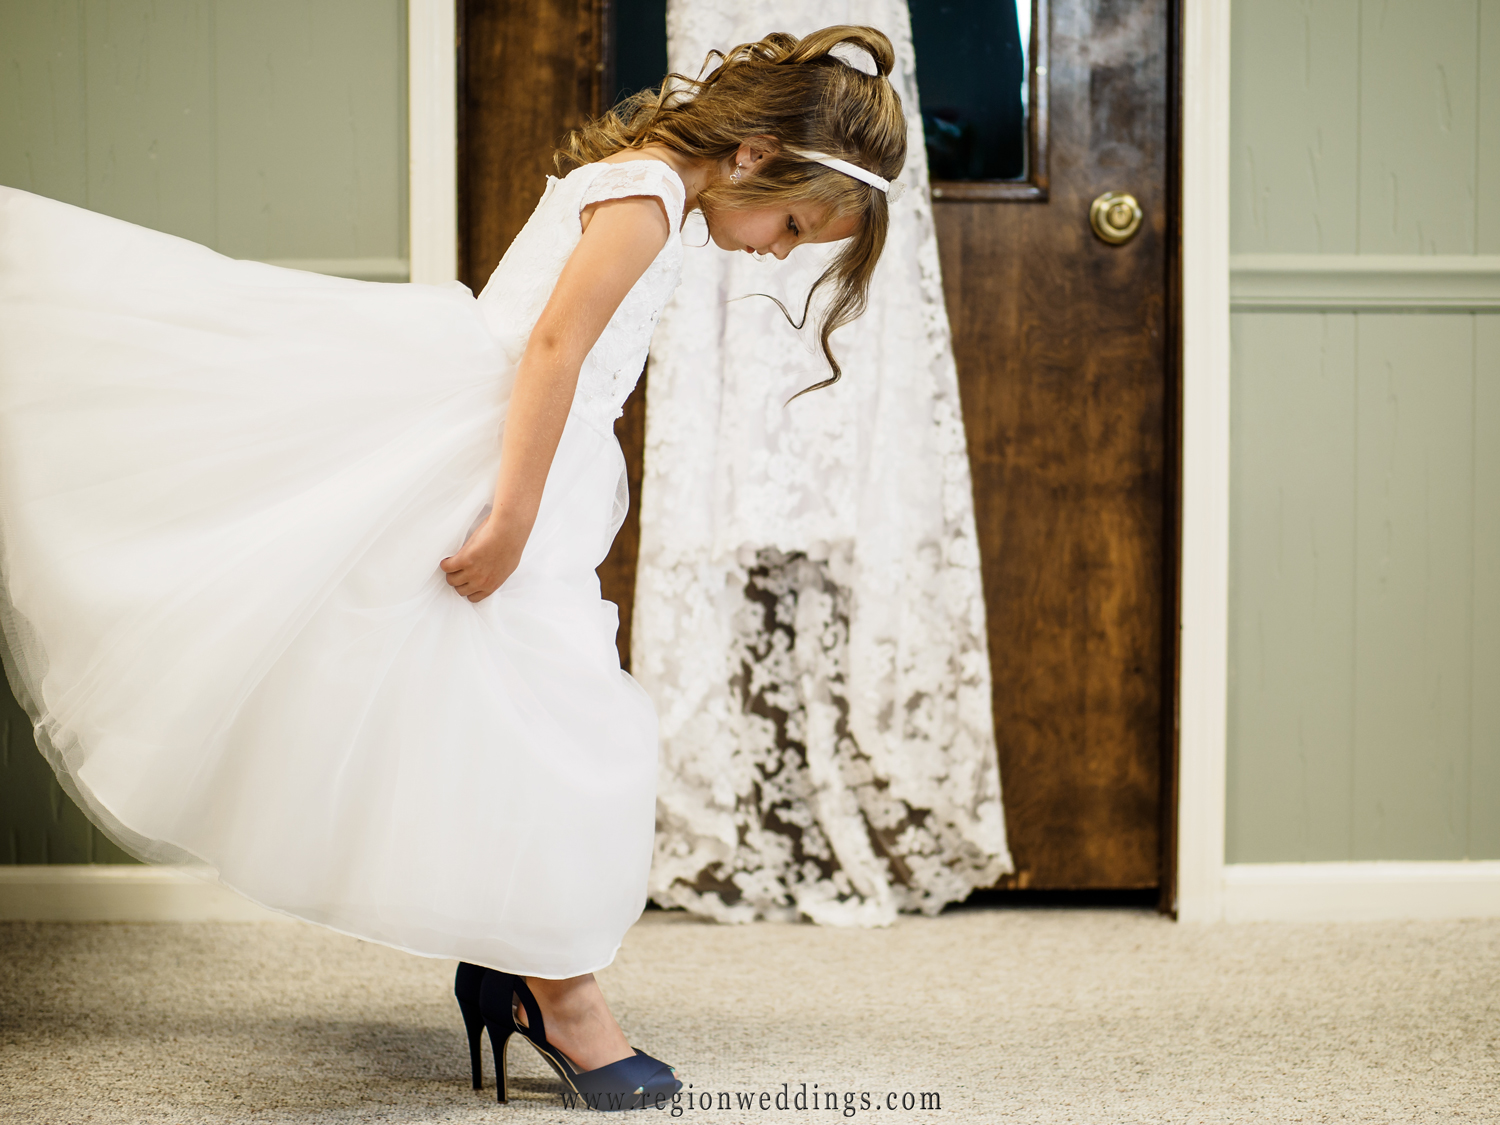 Flower girl steps into the bride's wedding shoes.